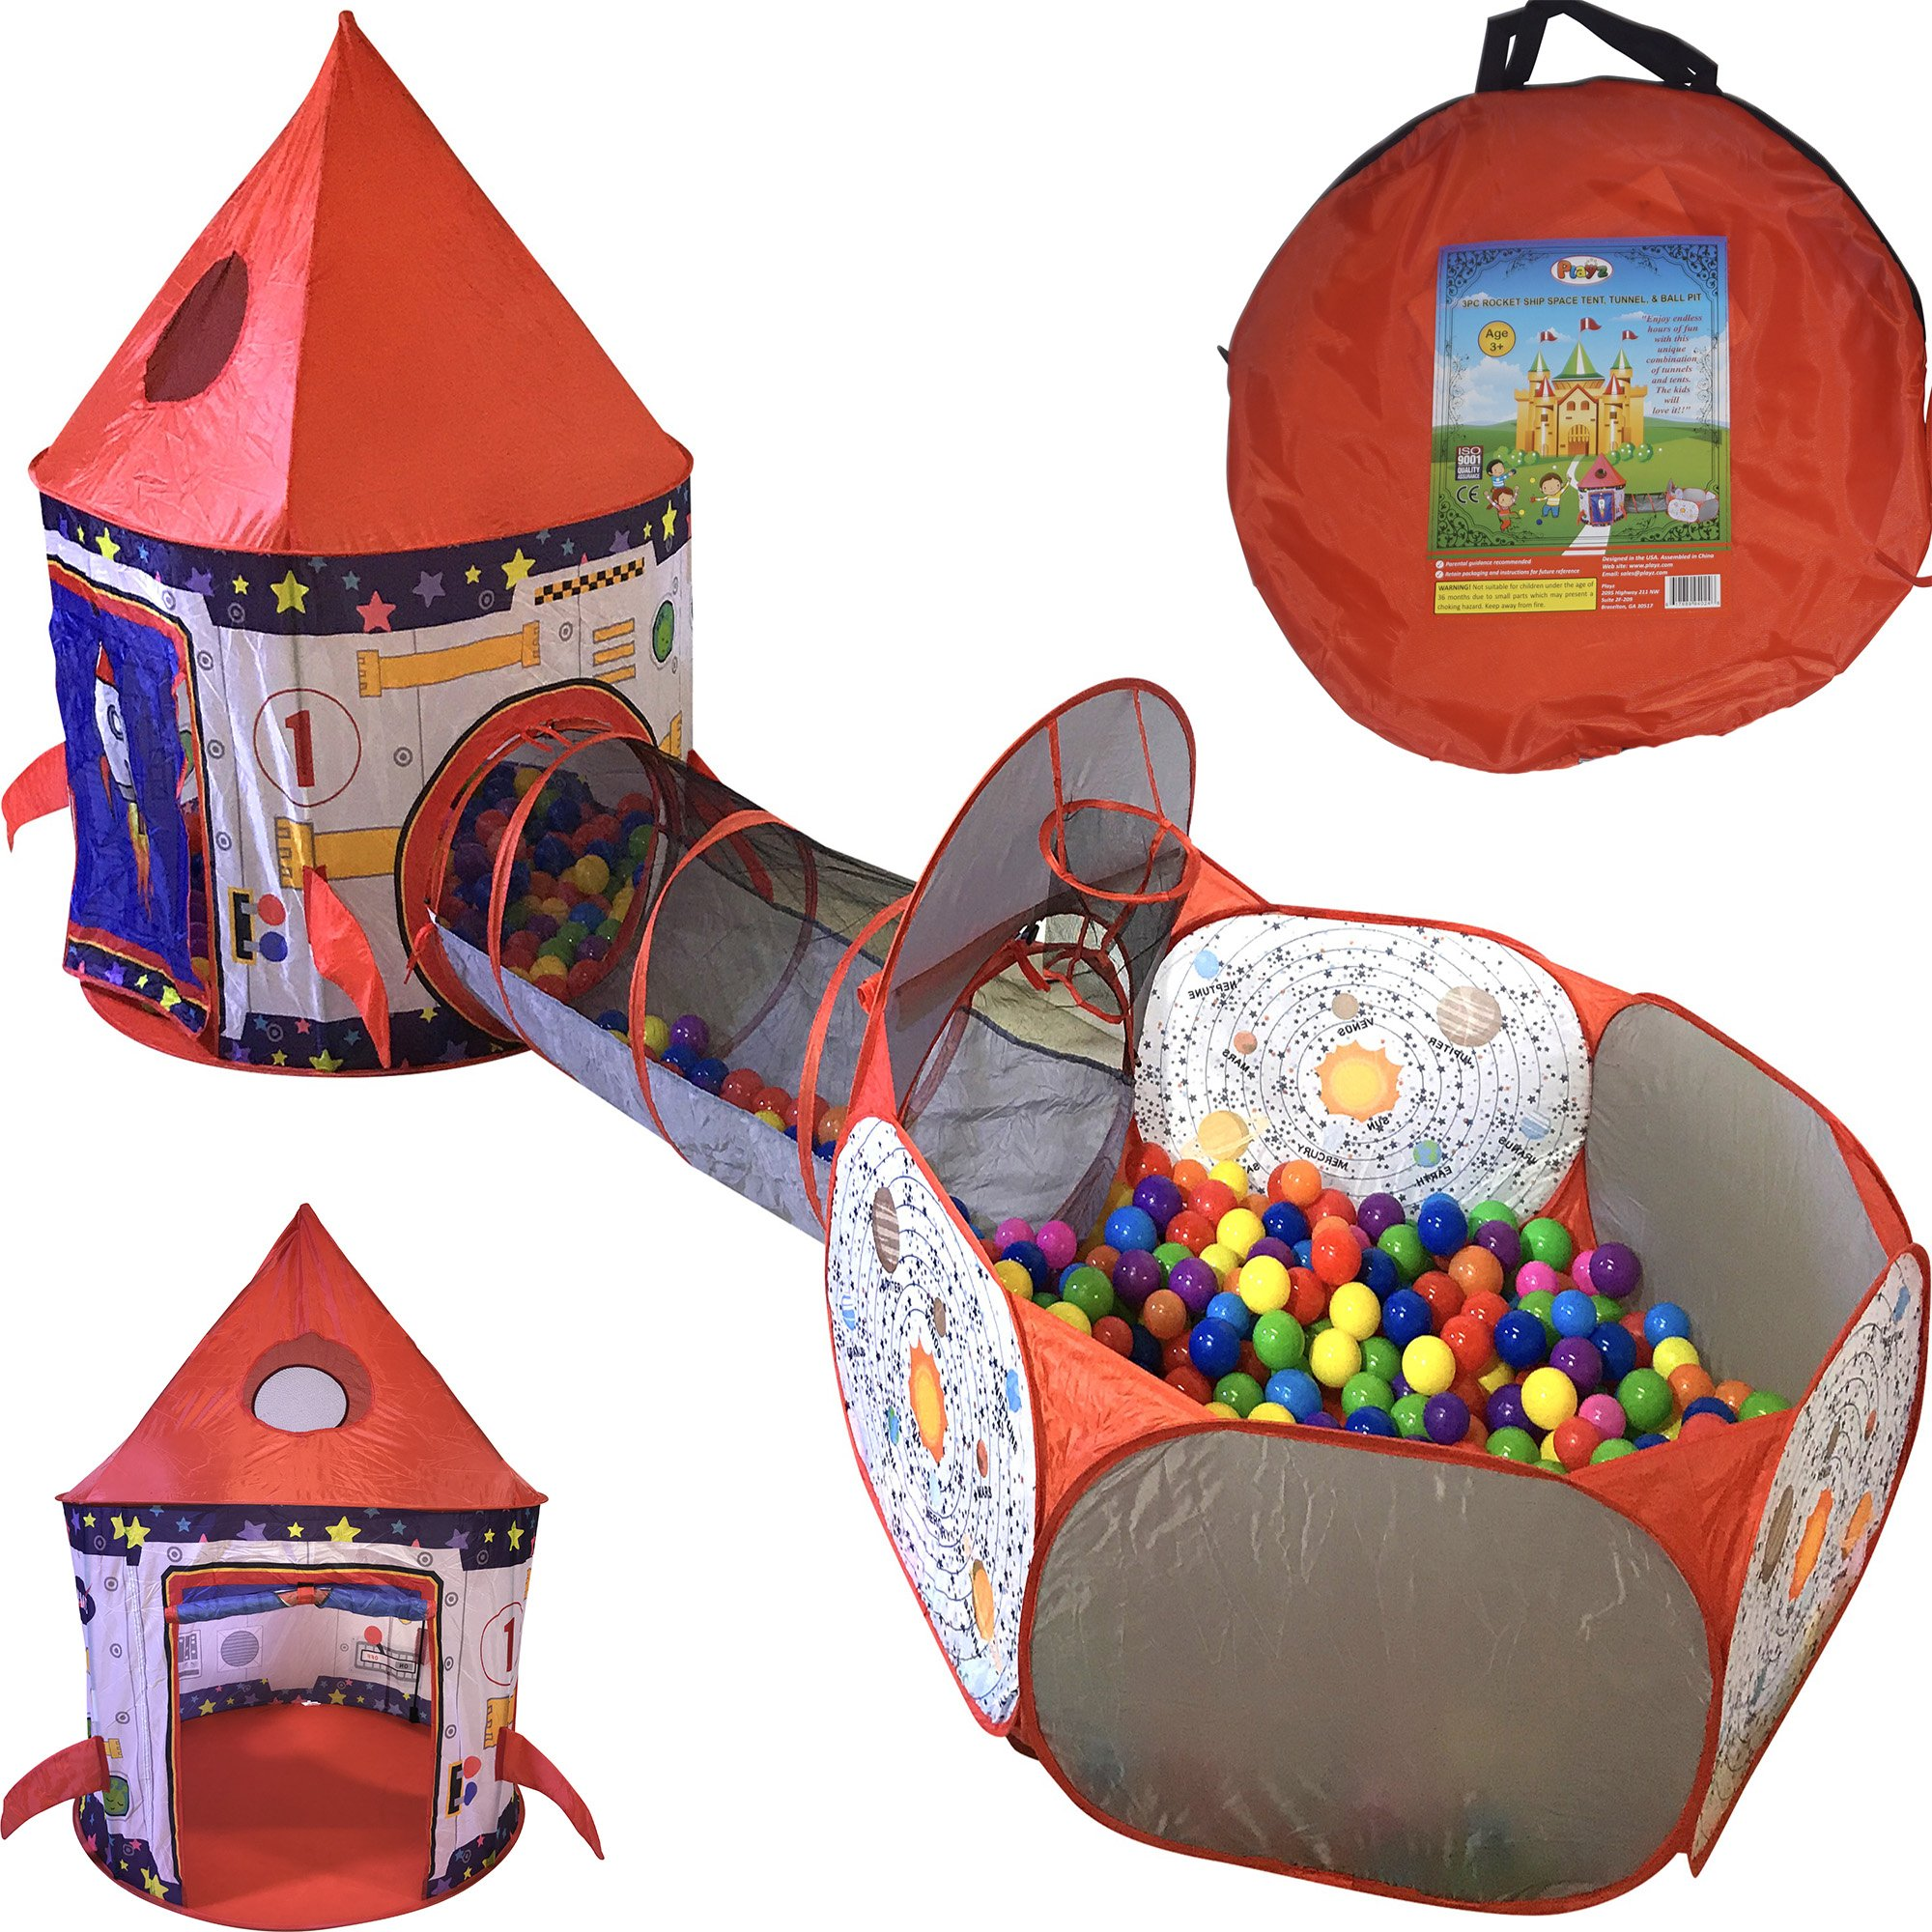 Playz 3pc Rocket Ship Astronaut Kids Play Tent, Tunnel, & Ball Pit with Basketball Hoop Toys for Boys, Girls, Babies, and Toddlers - STEM Inspired Educational Galactic Spaceship Design w/ Planets by Playz